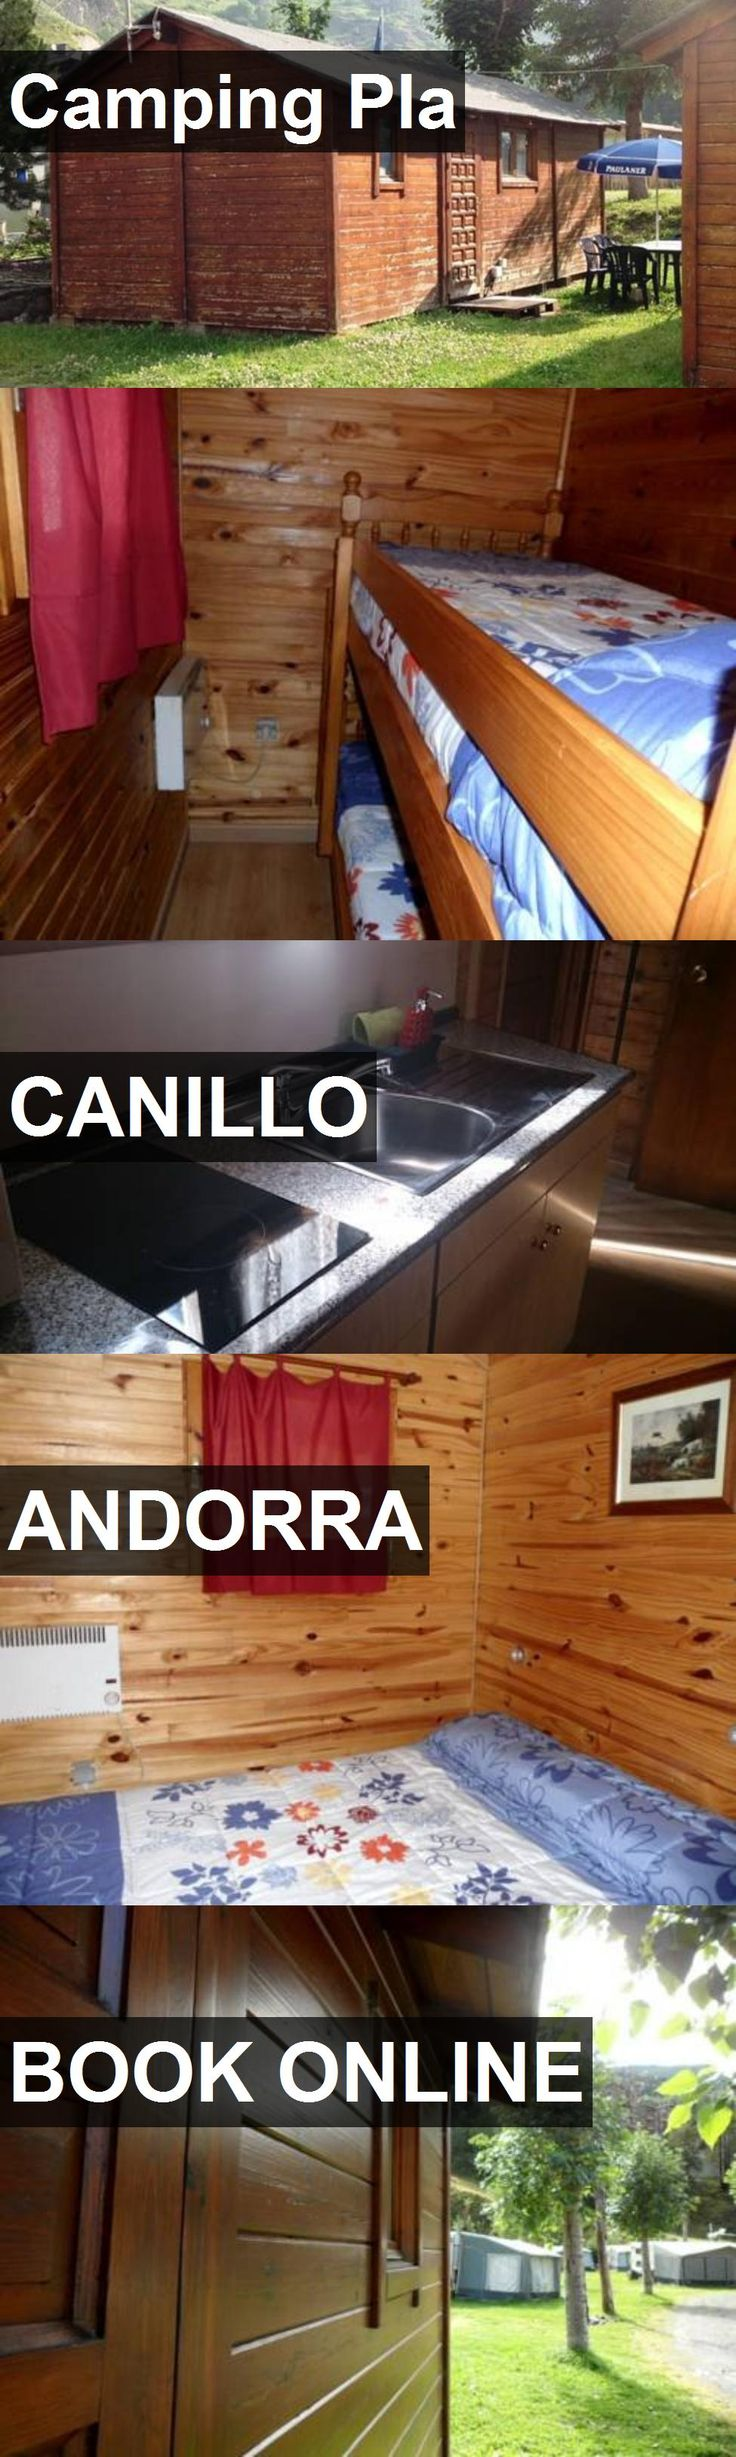 Hotel Camping Pla in Canillo, Andorra. For more information, photos, reviews and best prices please follow the link. #Andorra #Canillo #travel #vacation #hotel